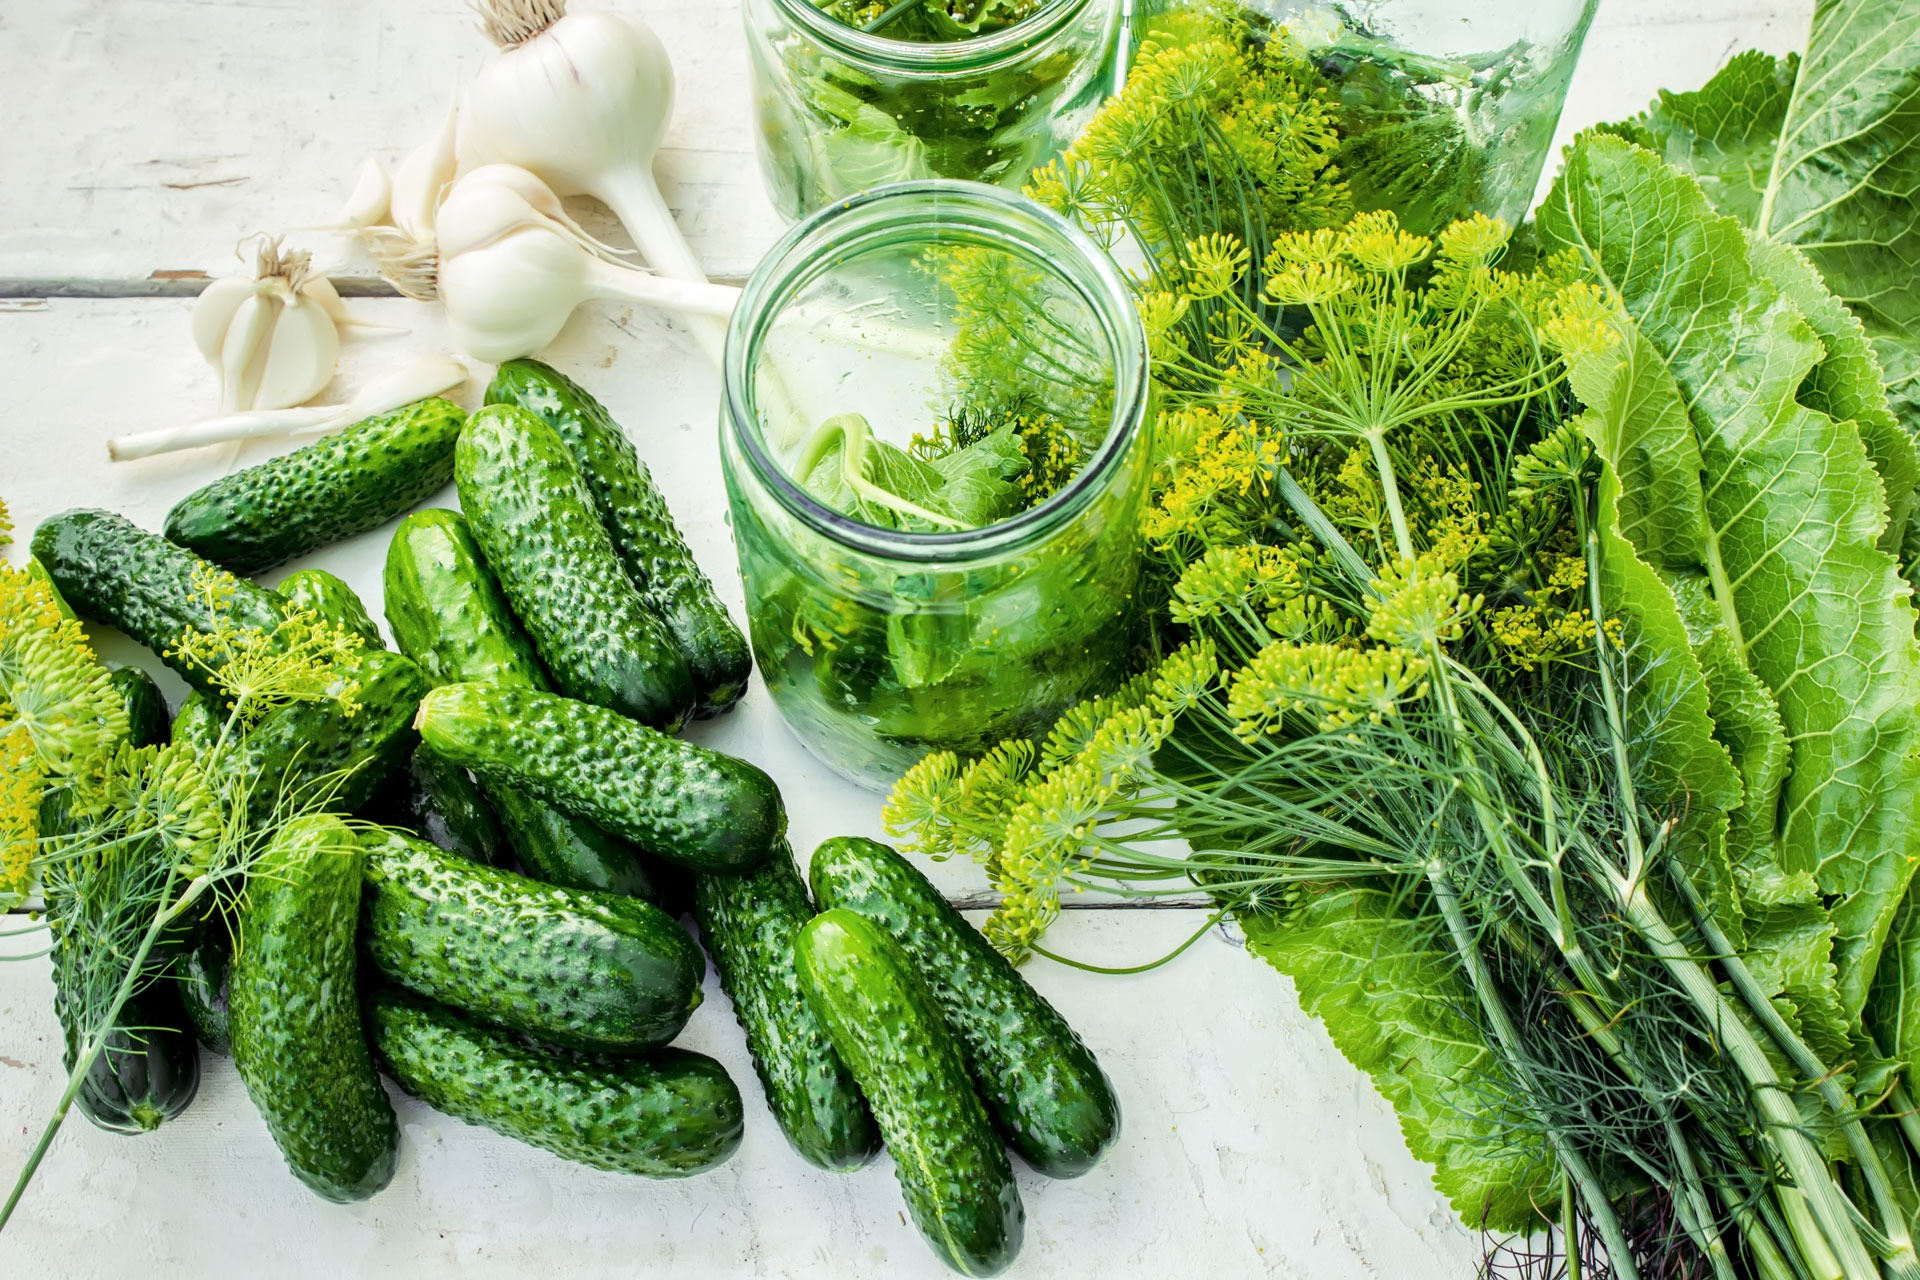 Preparation for pickling cucumbers